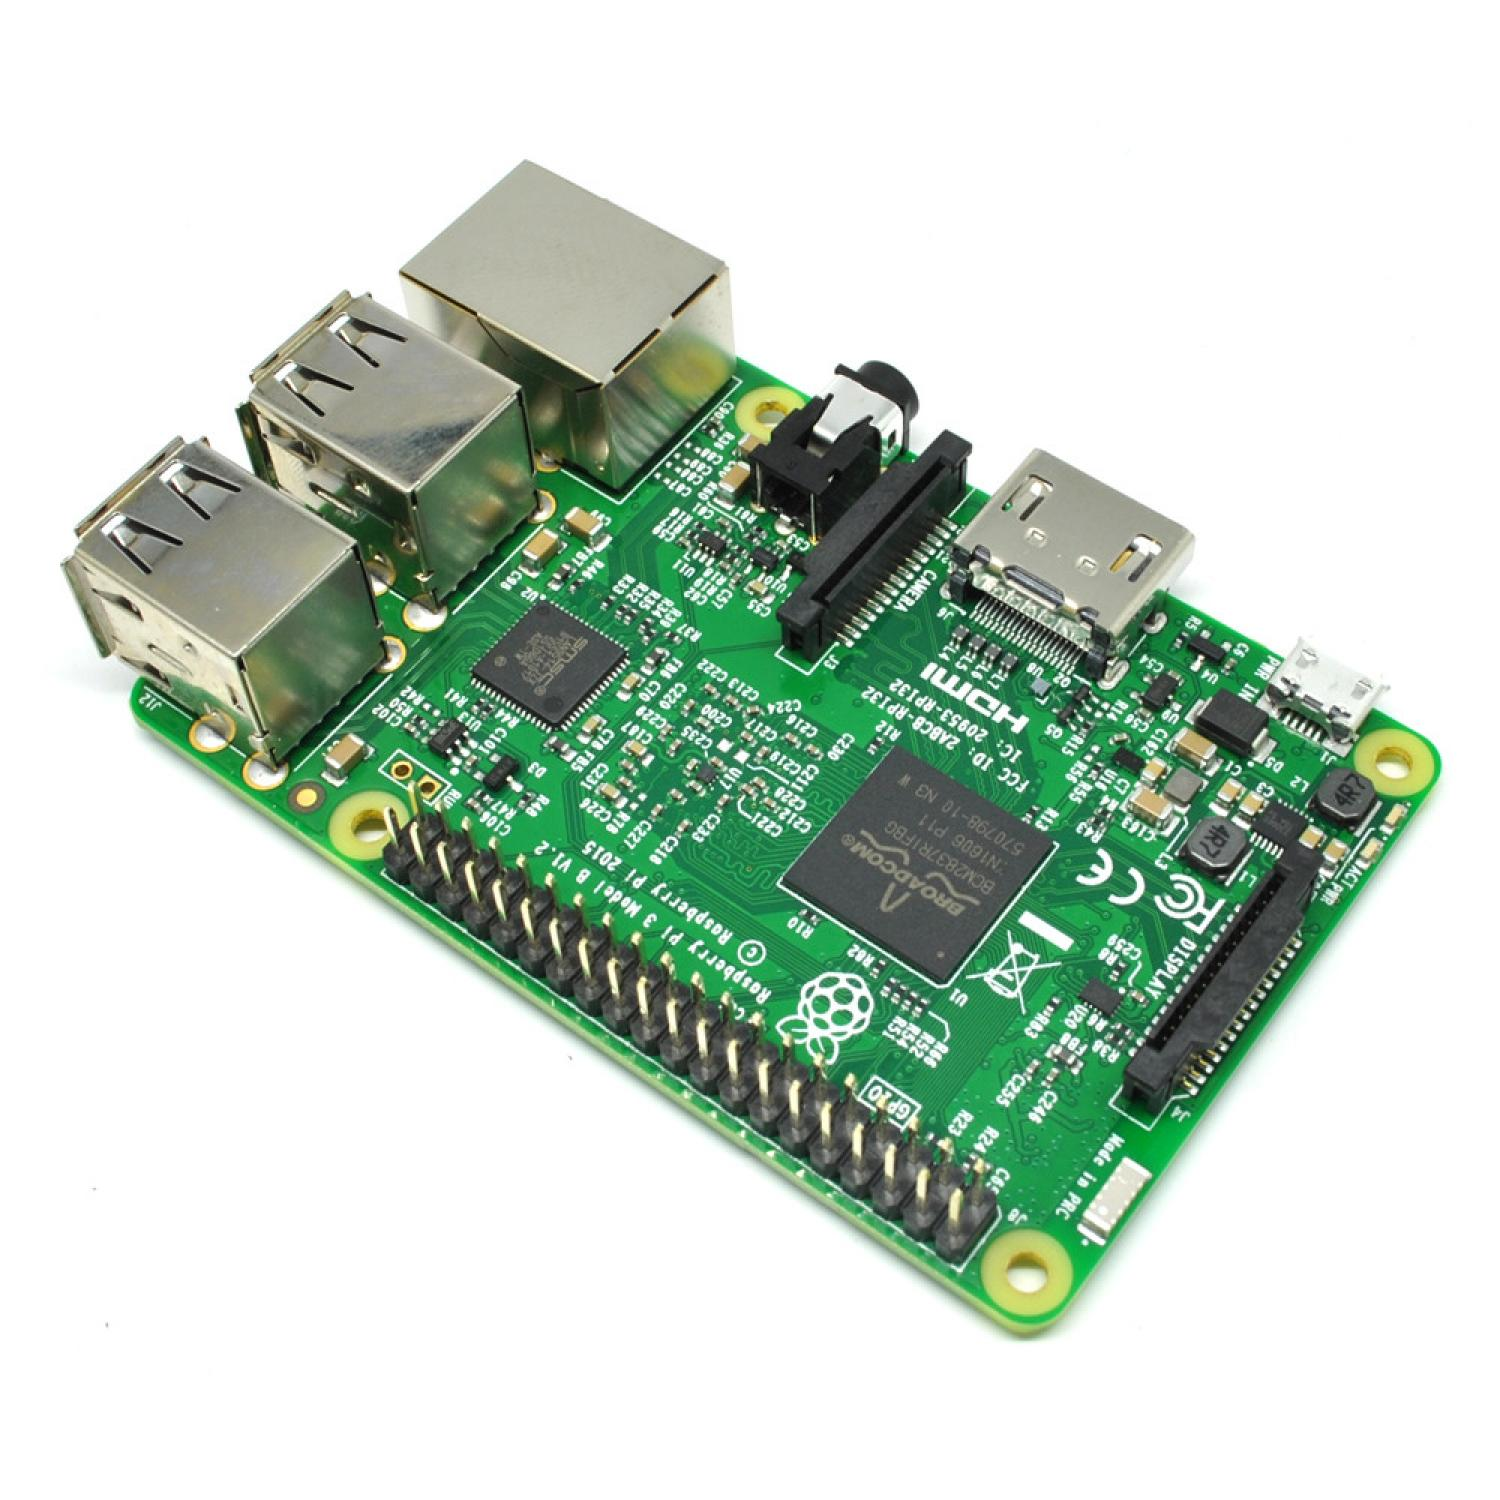 raspberry pi 3 model b with bcm2837 element14 version. Black Bedroom Furniture Sets. Home Design Ideas